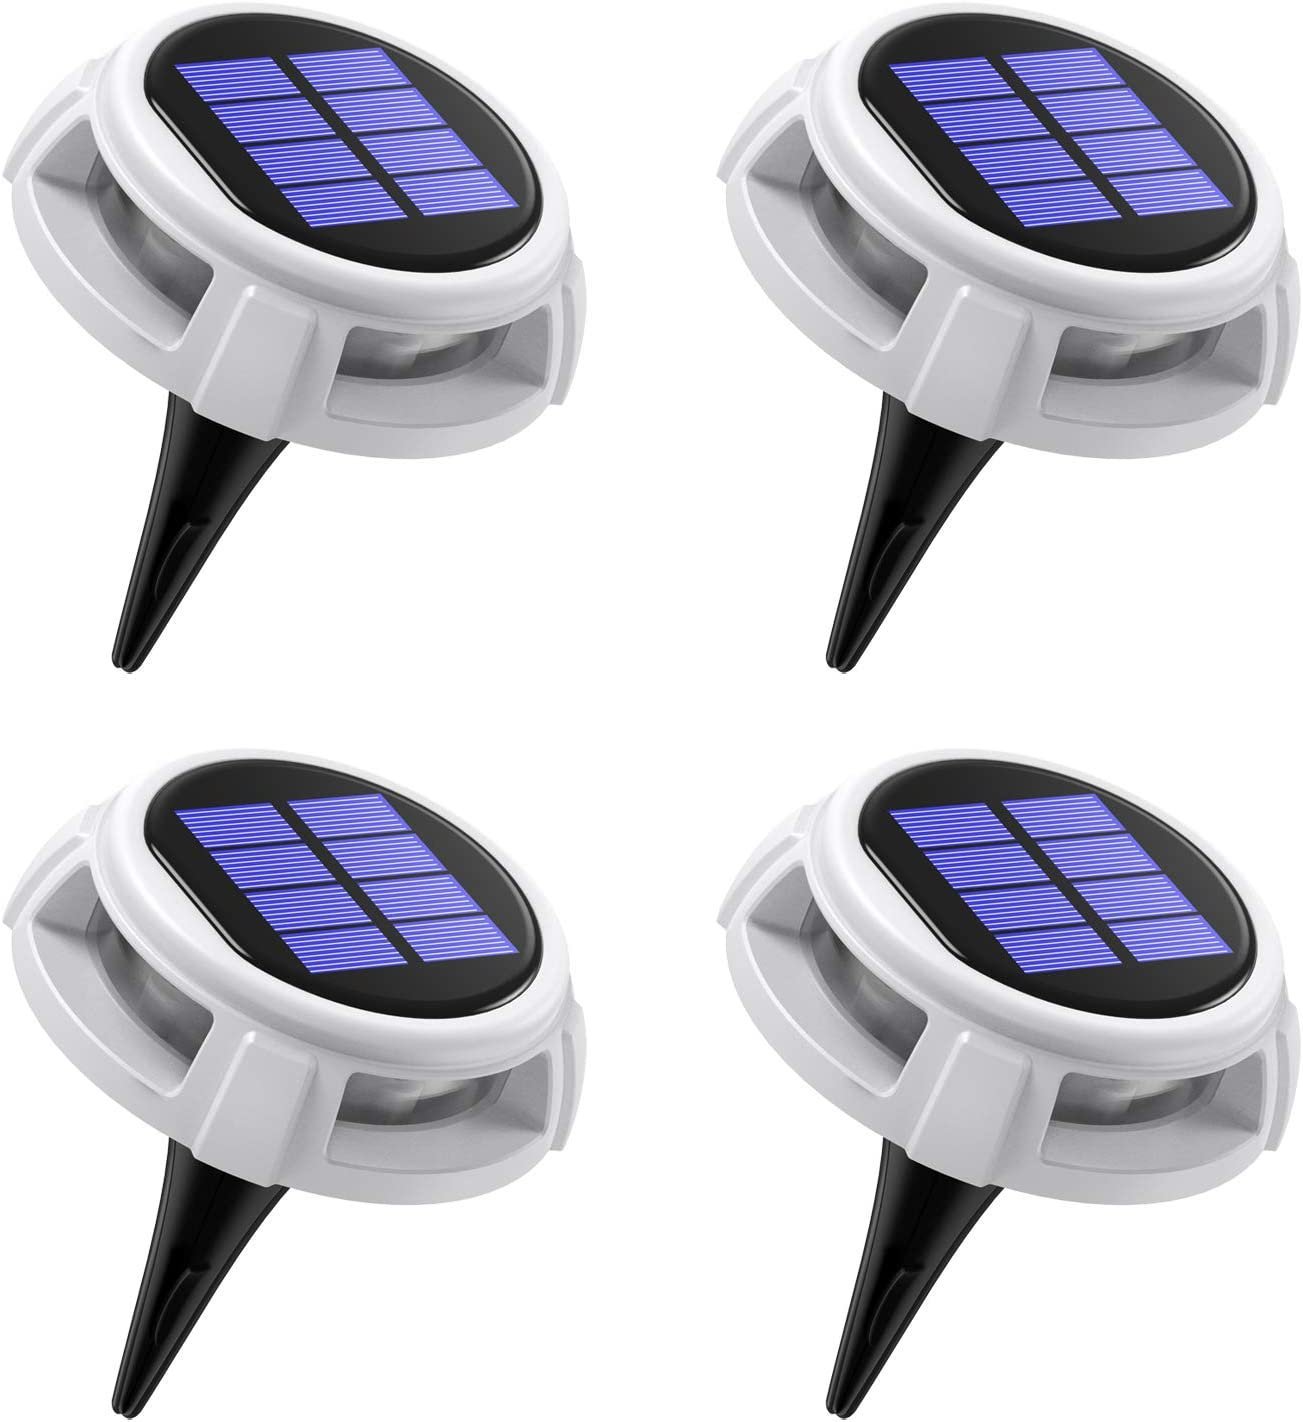 (2020 Upgraded) AMIR Solar Powered Disk Lights, LED Solar Ground Lights with 4 Lighting Modes, IP67 Waterproof Solar Pathway Lights Outdoor for Yard Deck Lawn Patio, White (4 Pack)